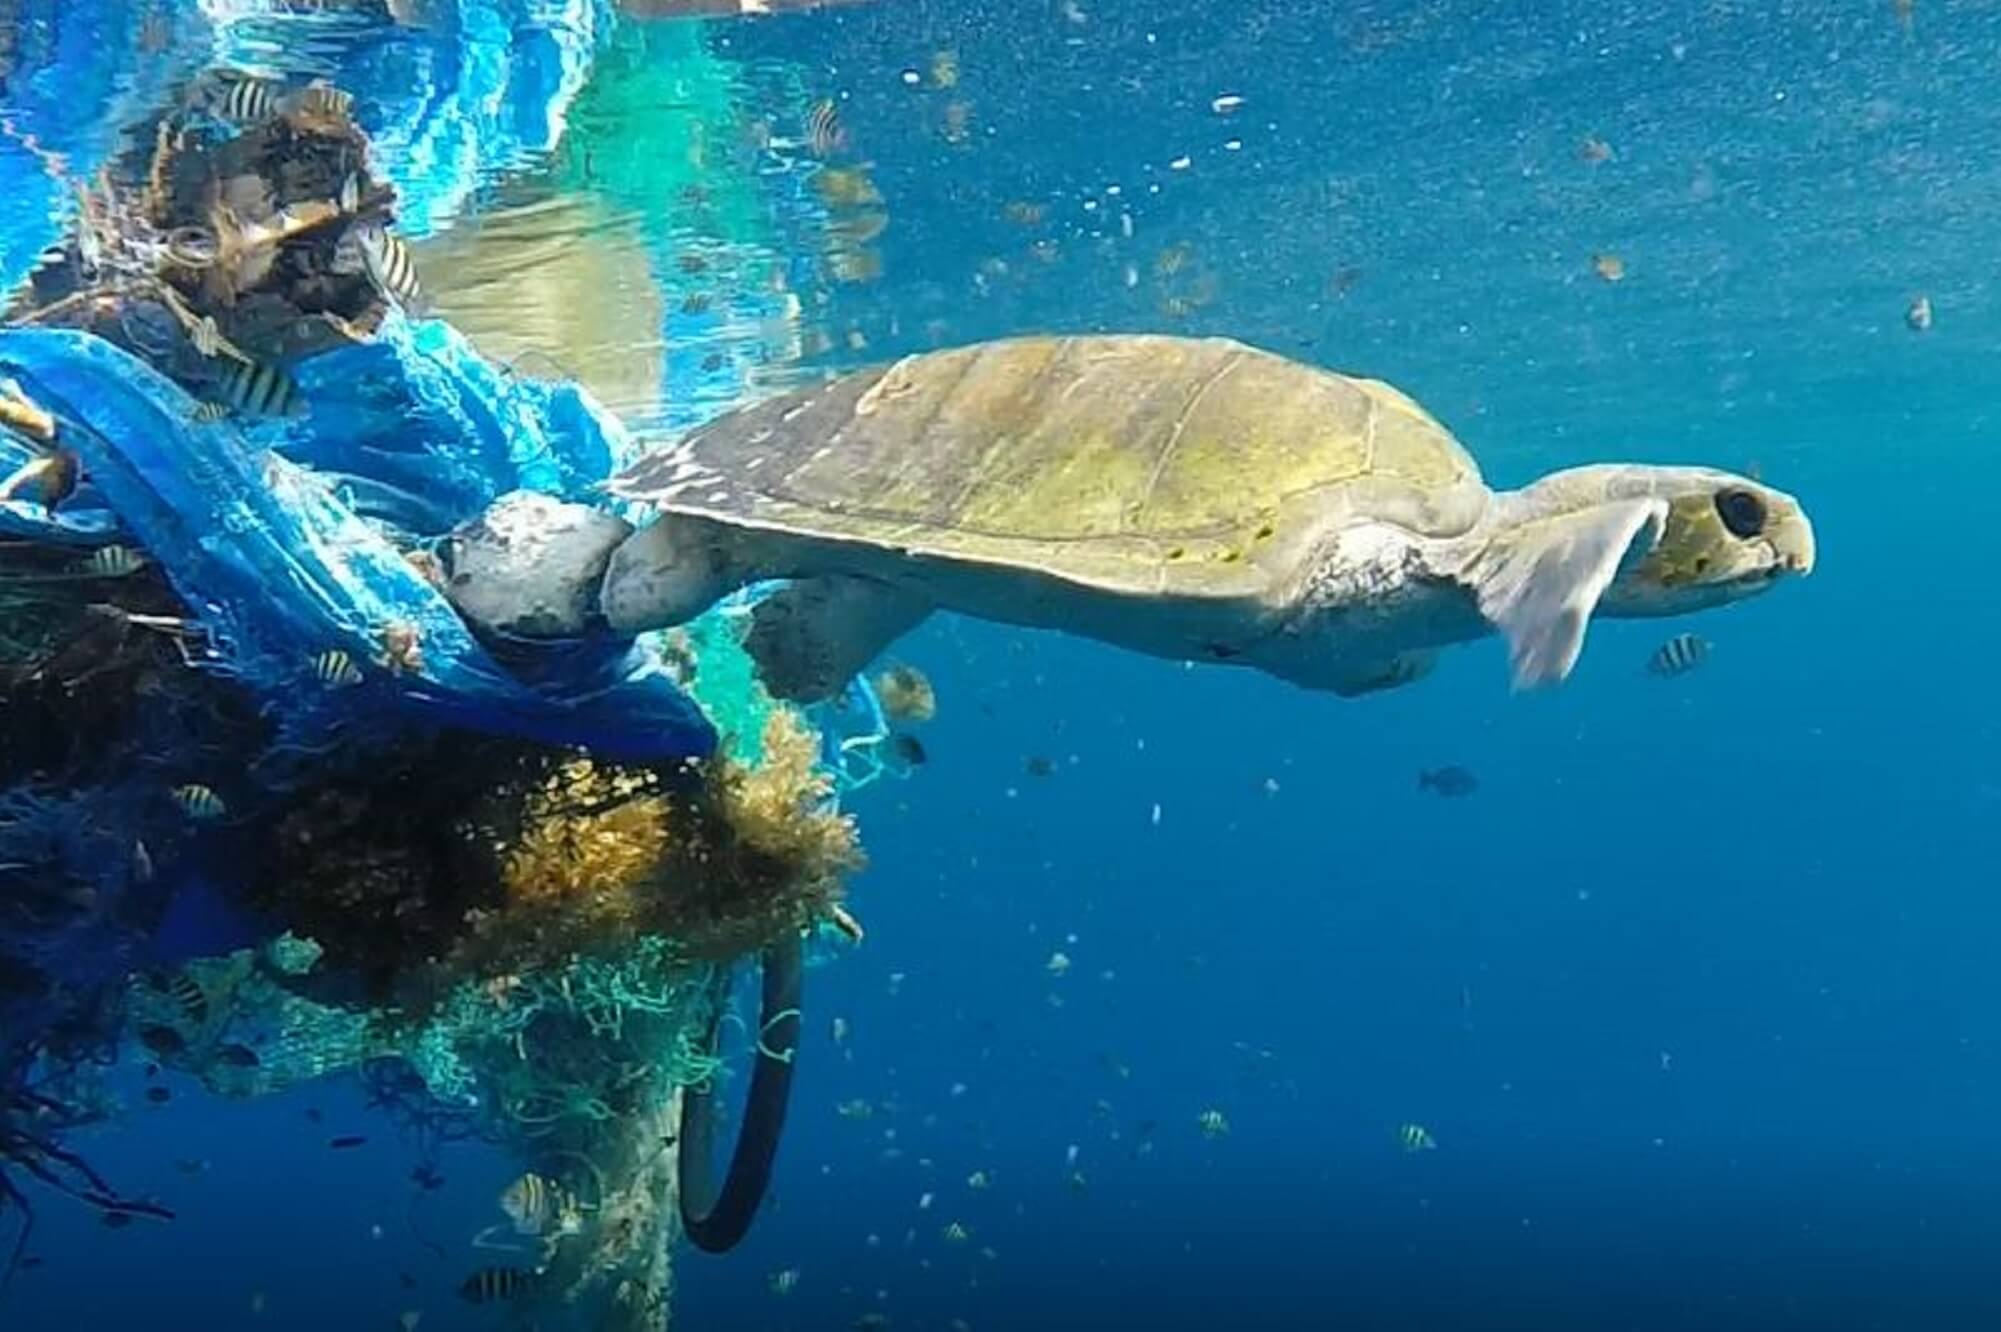 Film of turtle caught in abandoned fishing net